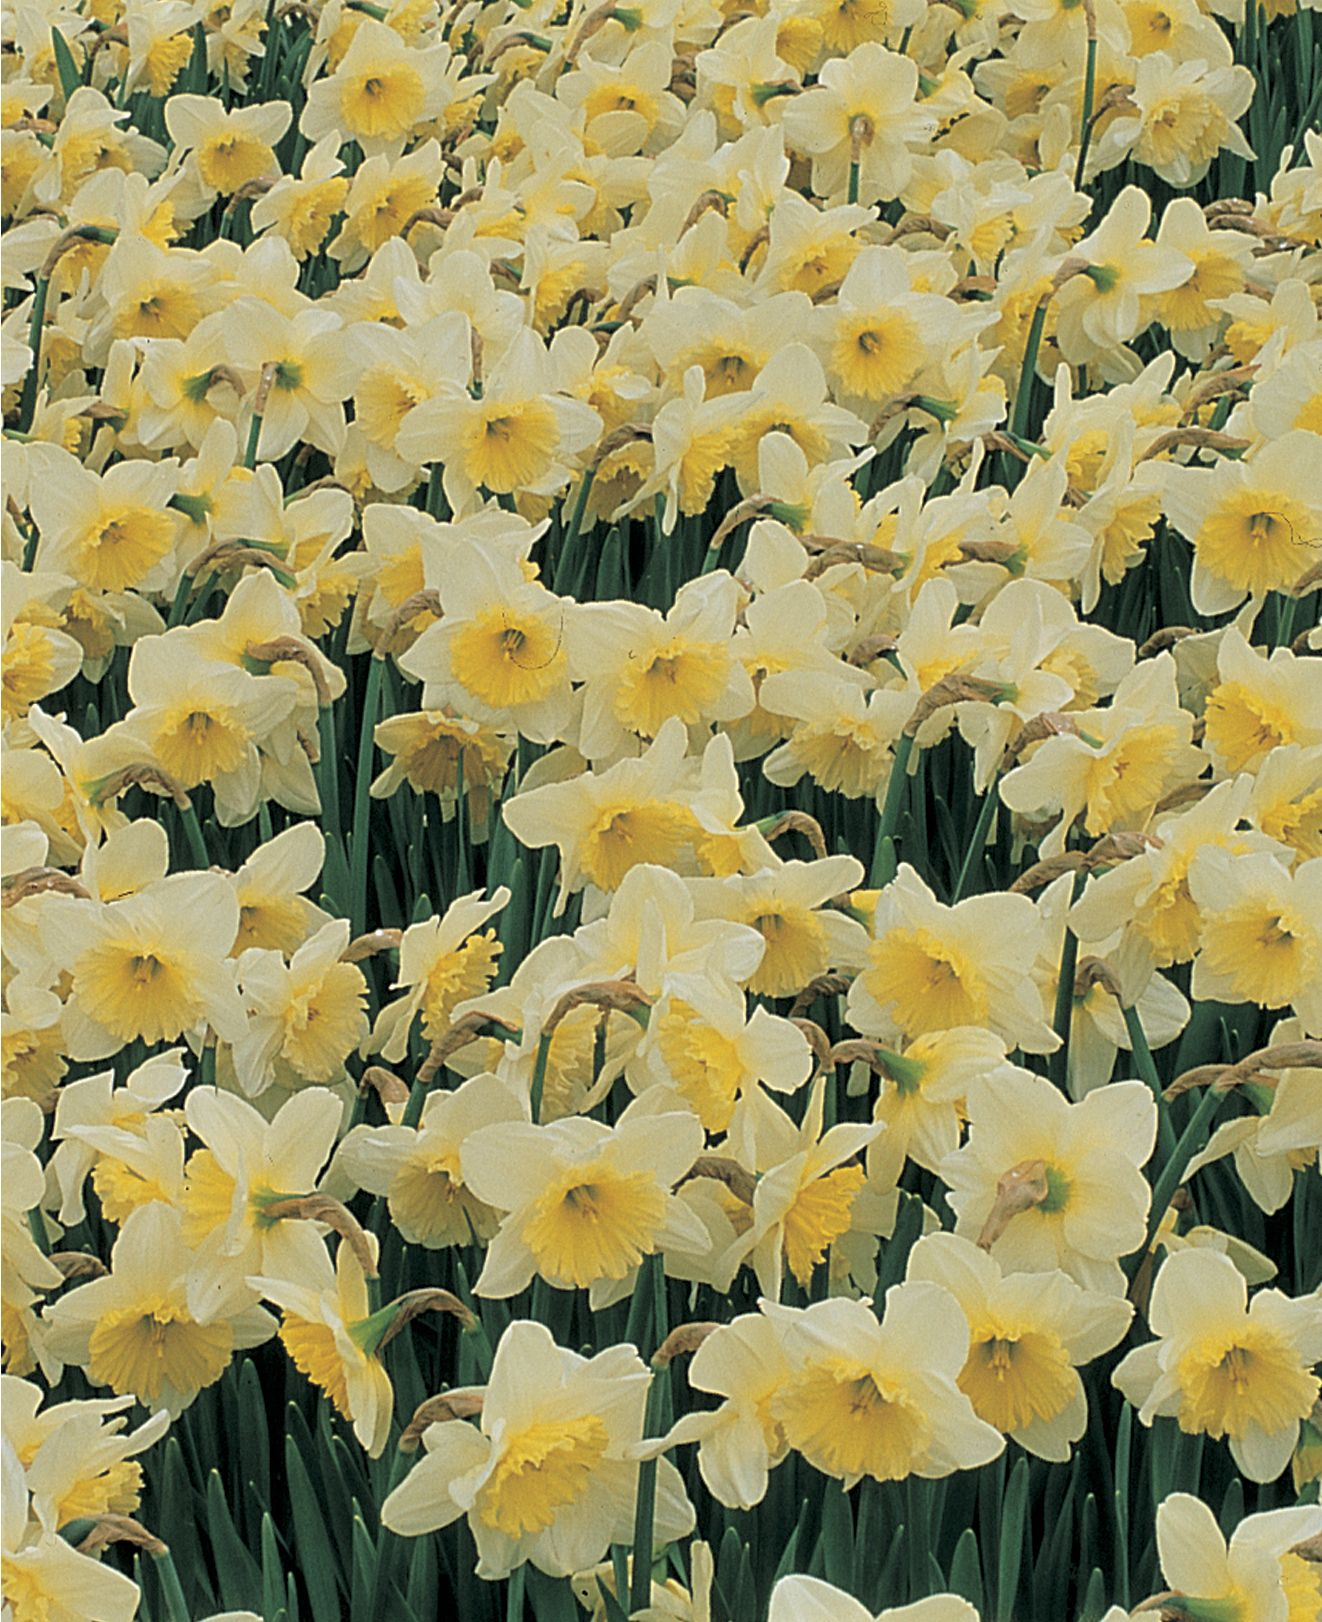 A Classical Daffodil To Plant This Autumn And One Of Our Top Ten Star Bulbs Is Narcissus Ice Follies Creates A S Daffodils Plants Texas Gardening